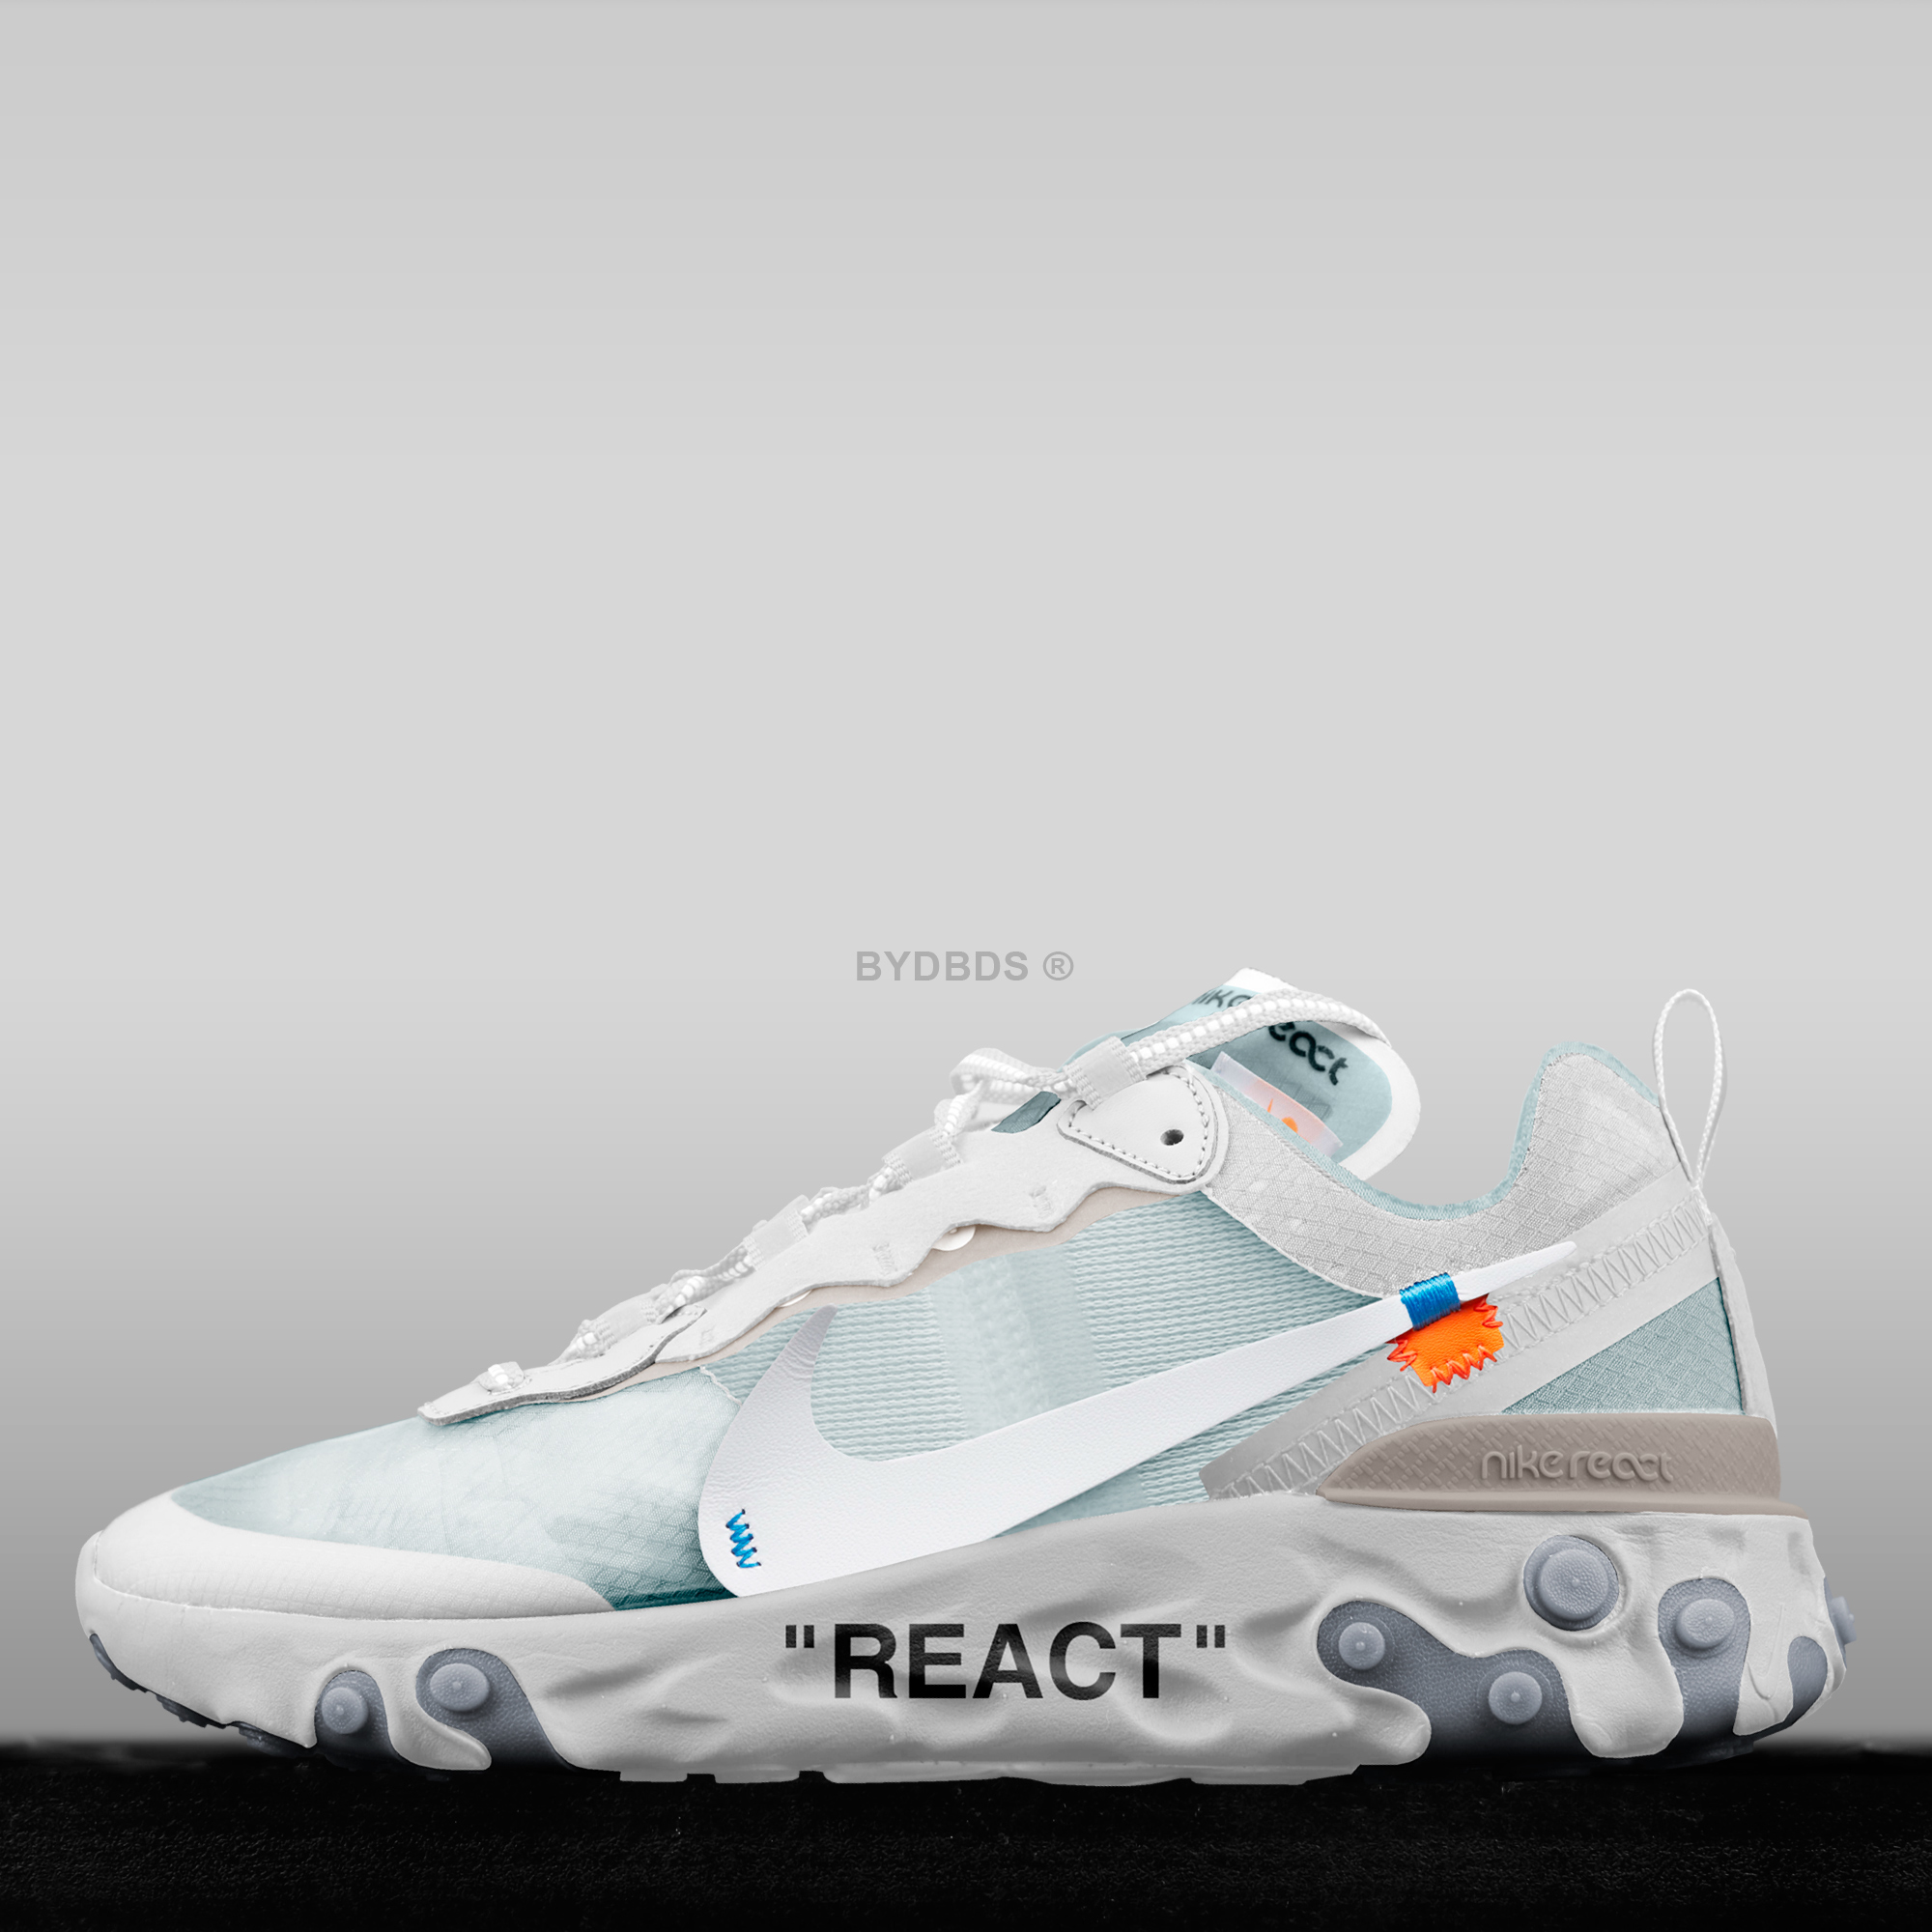 reputable site e2826 82a9f ... sweden nike react element 87 x off white concept bydbds on behance  fc24d b4ee1